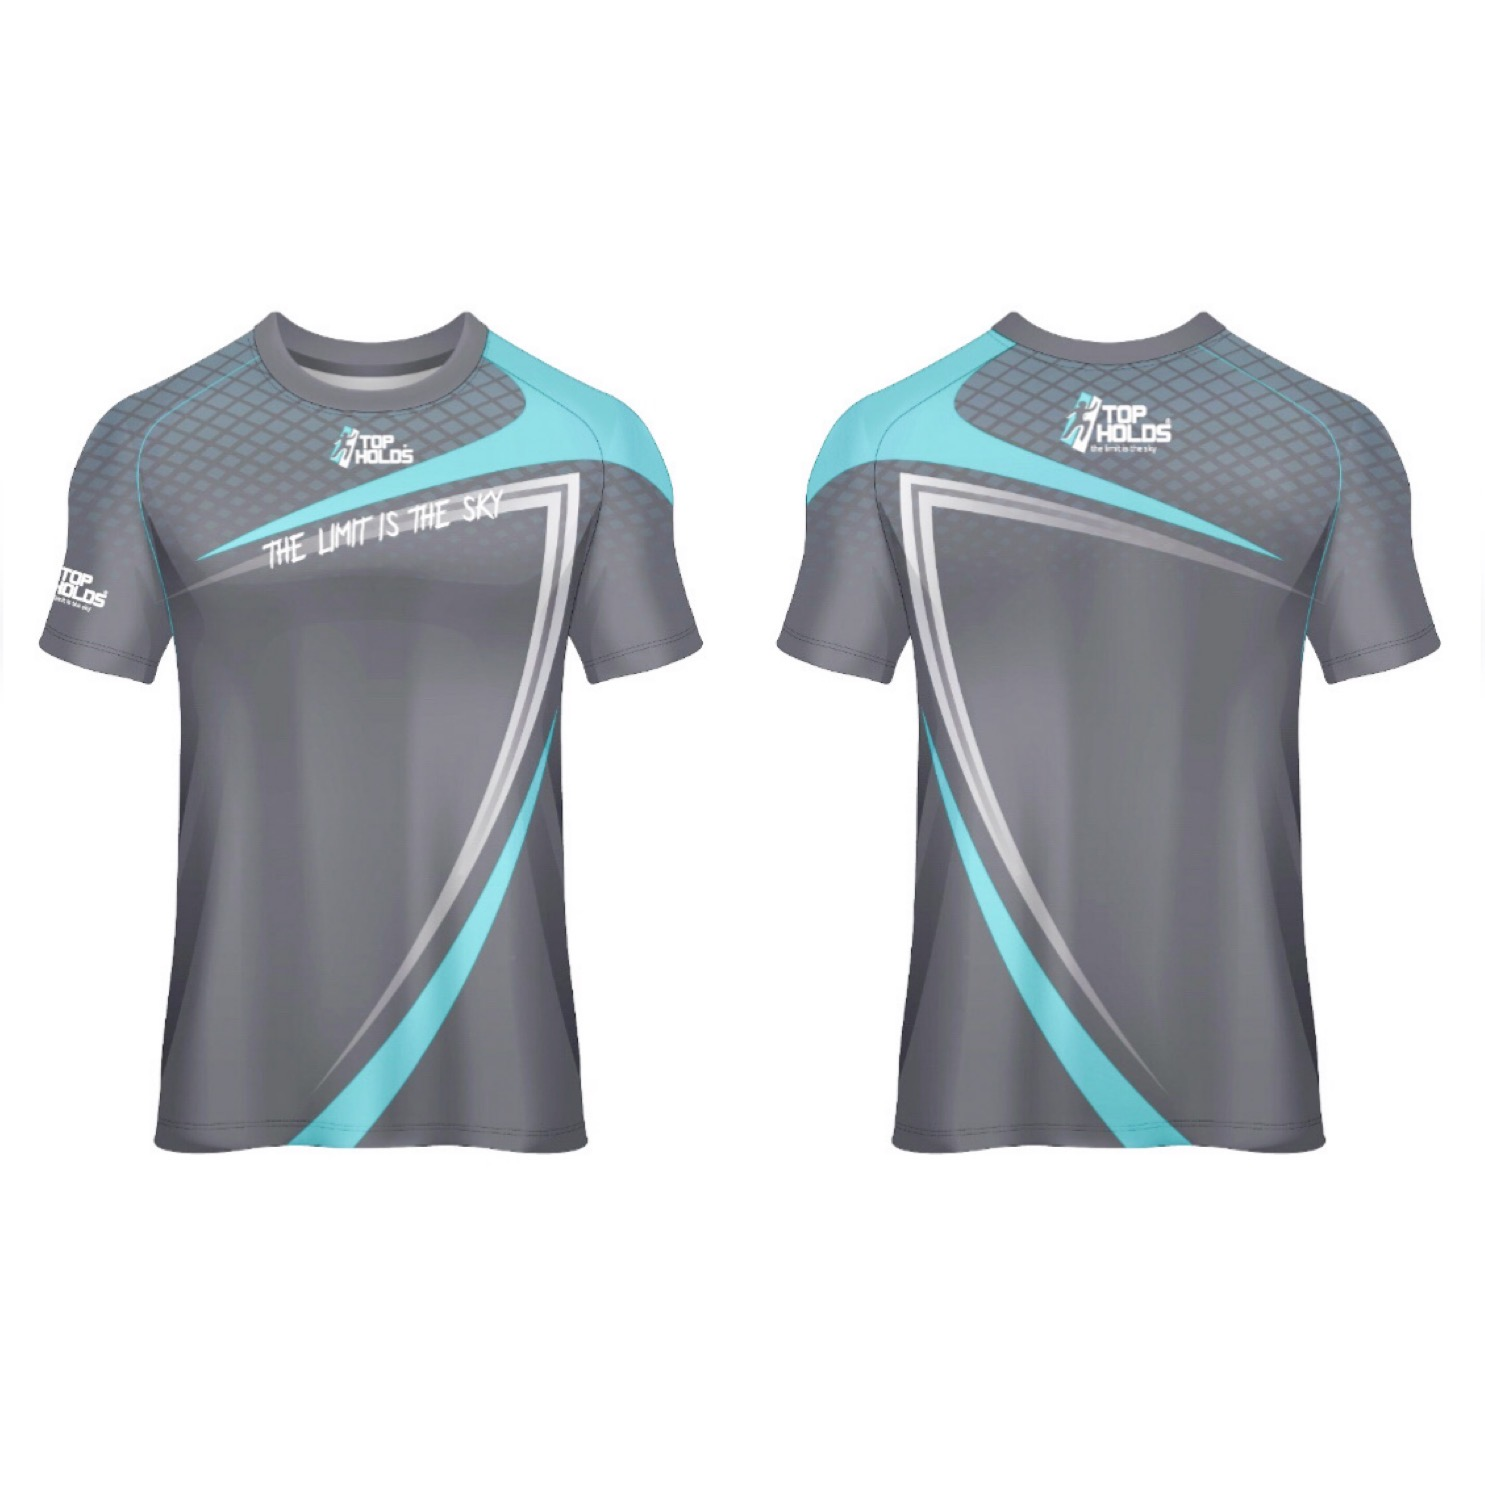 camiseta ocr top holds